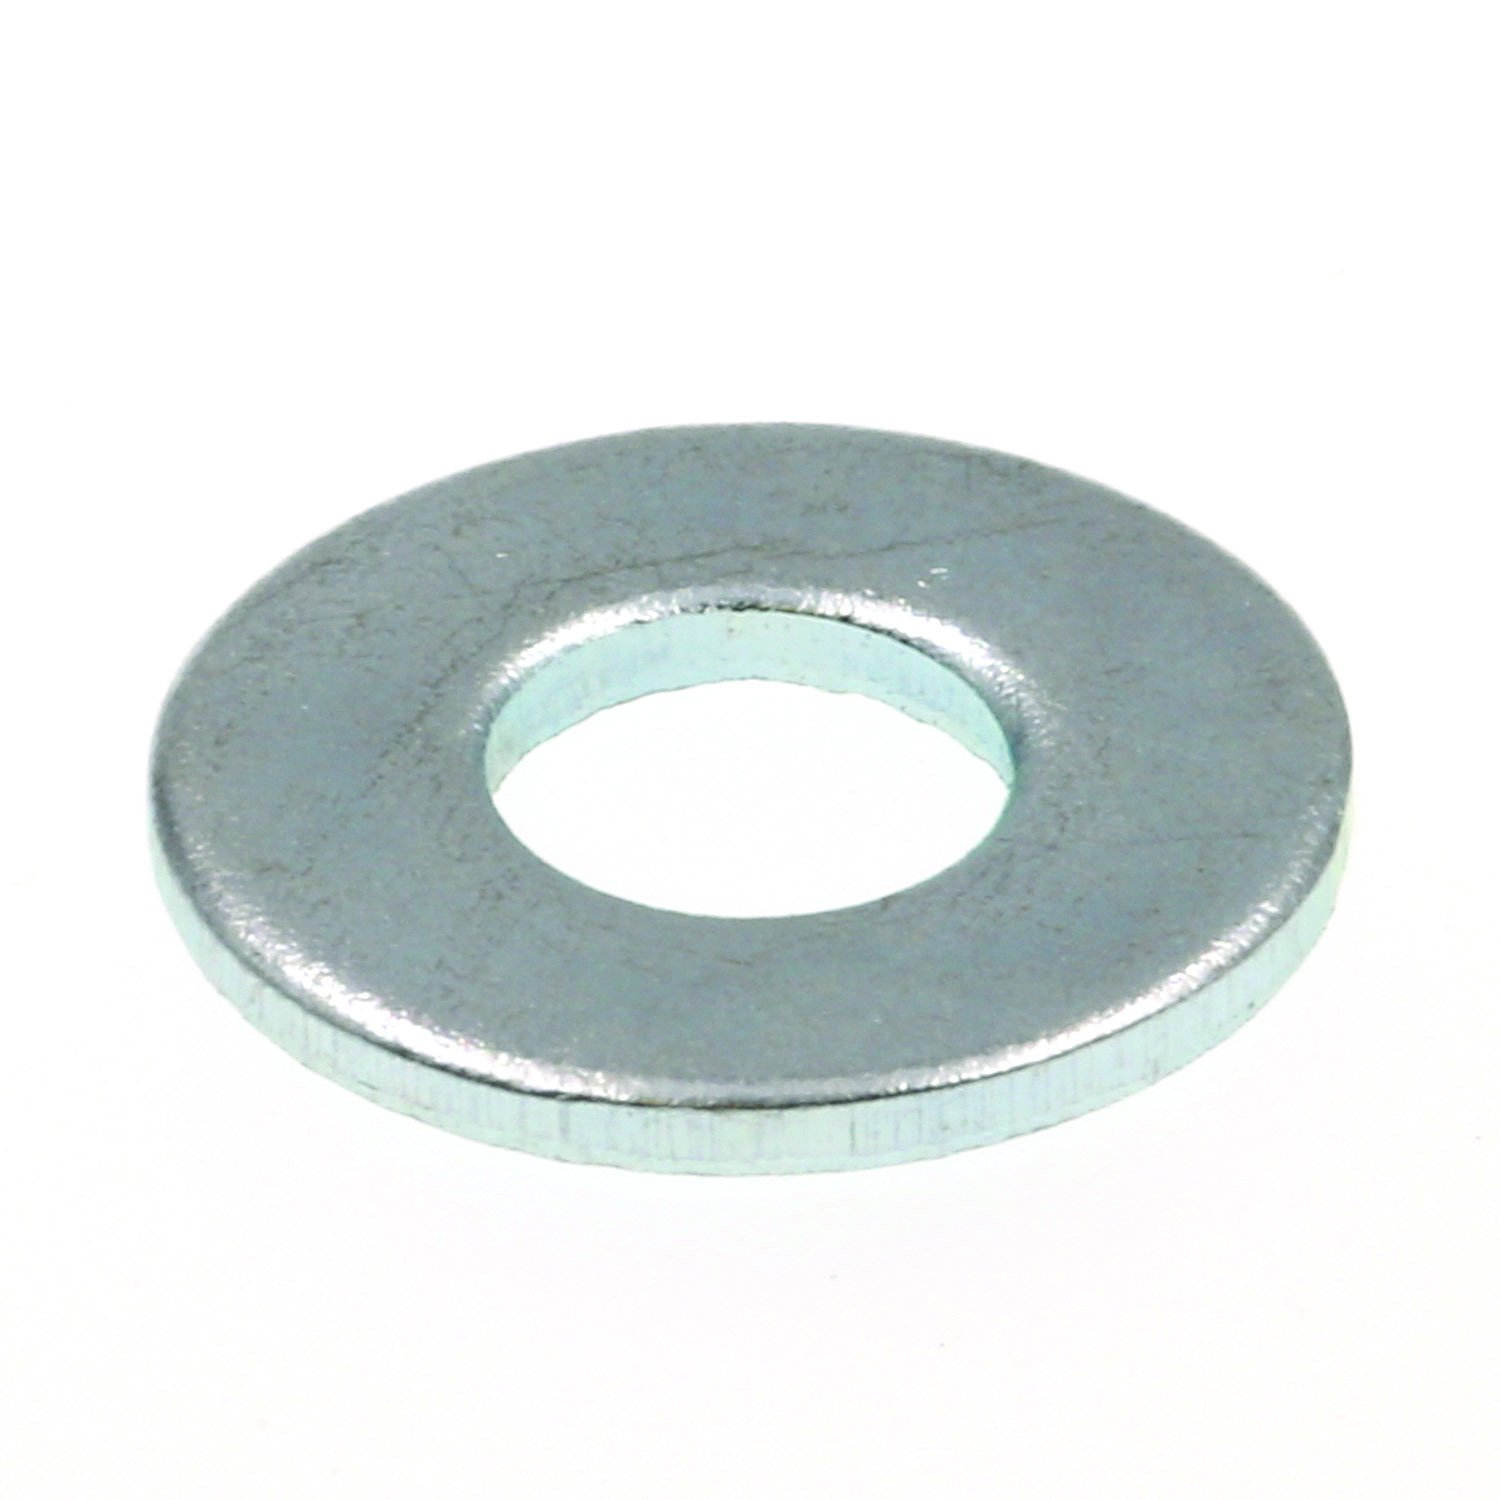 #8 X 7//16 in OD Zinc Plated Steel Prime-Line 9080538 Flat Washers SAE 50-Pack